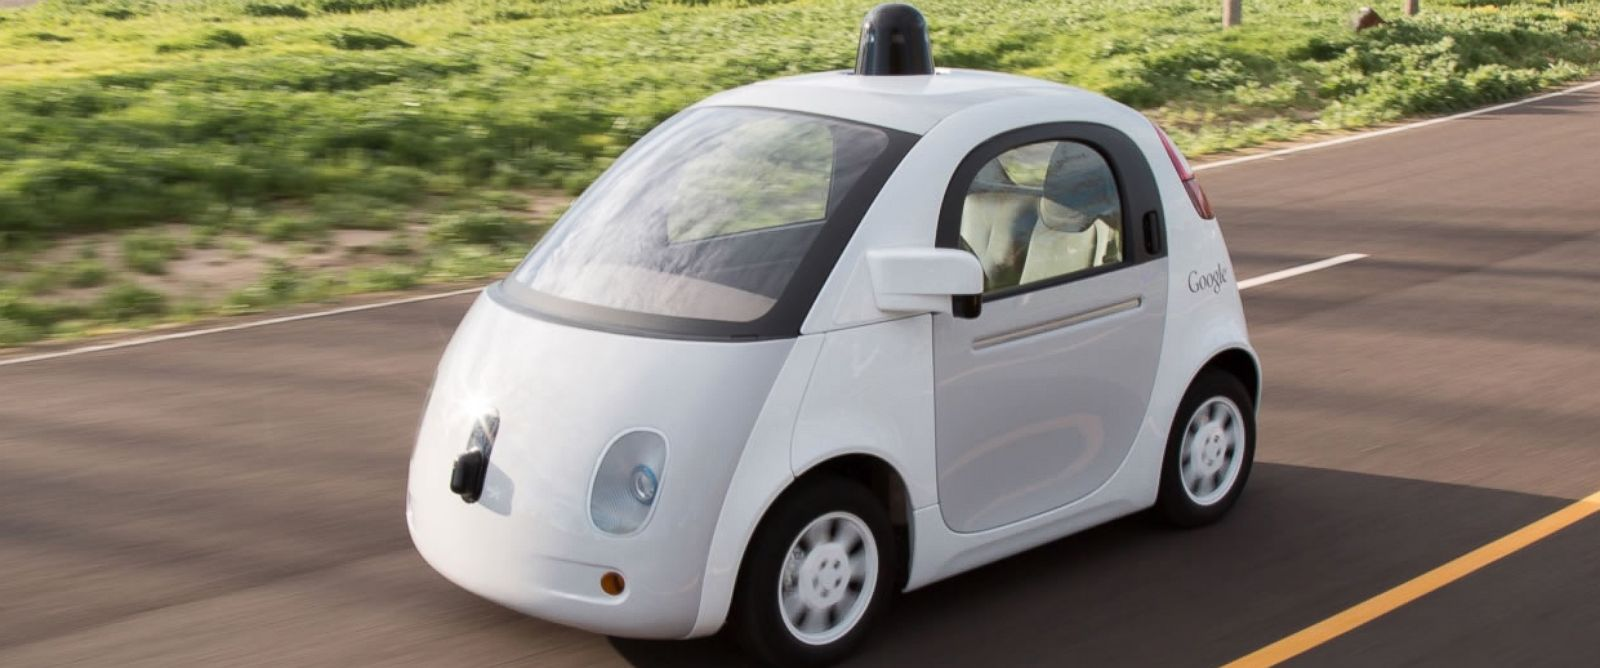 PHOTO: The finalized prototype of Google self-driving car is shown in this photo.